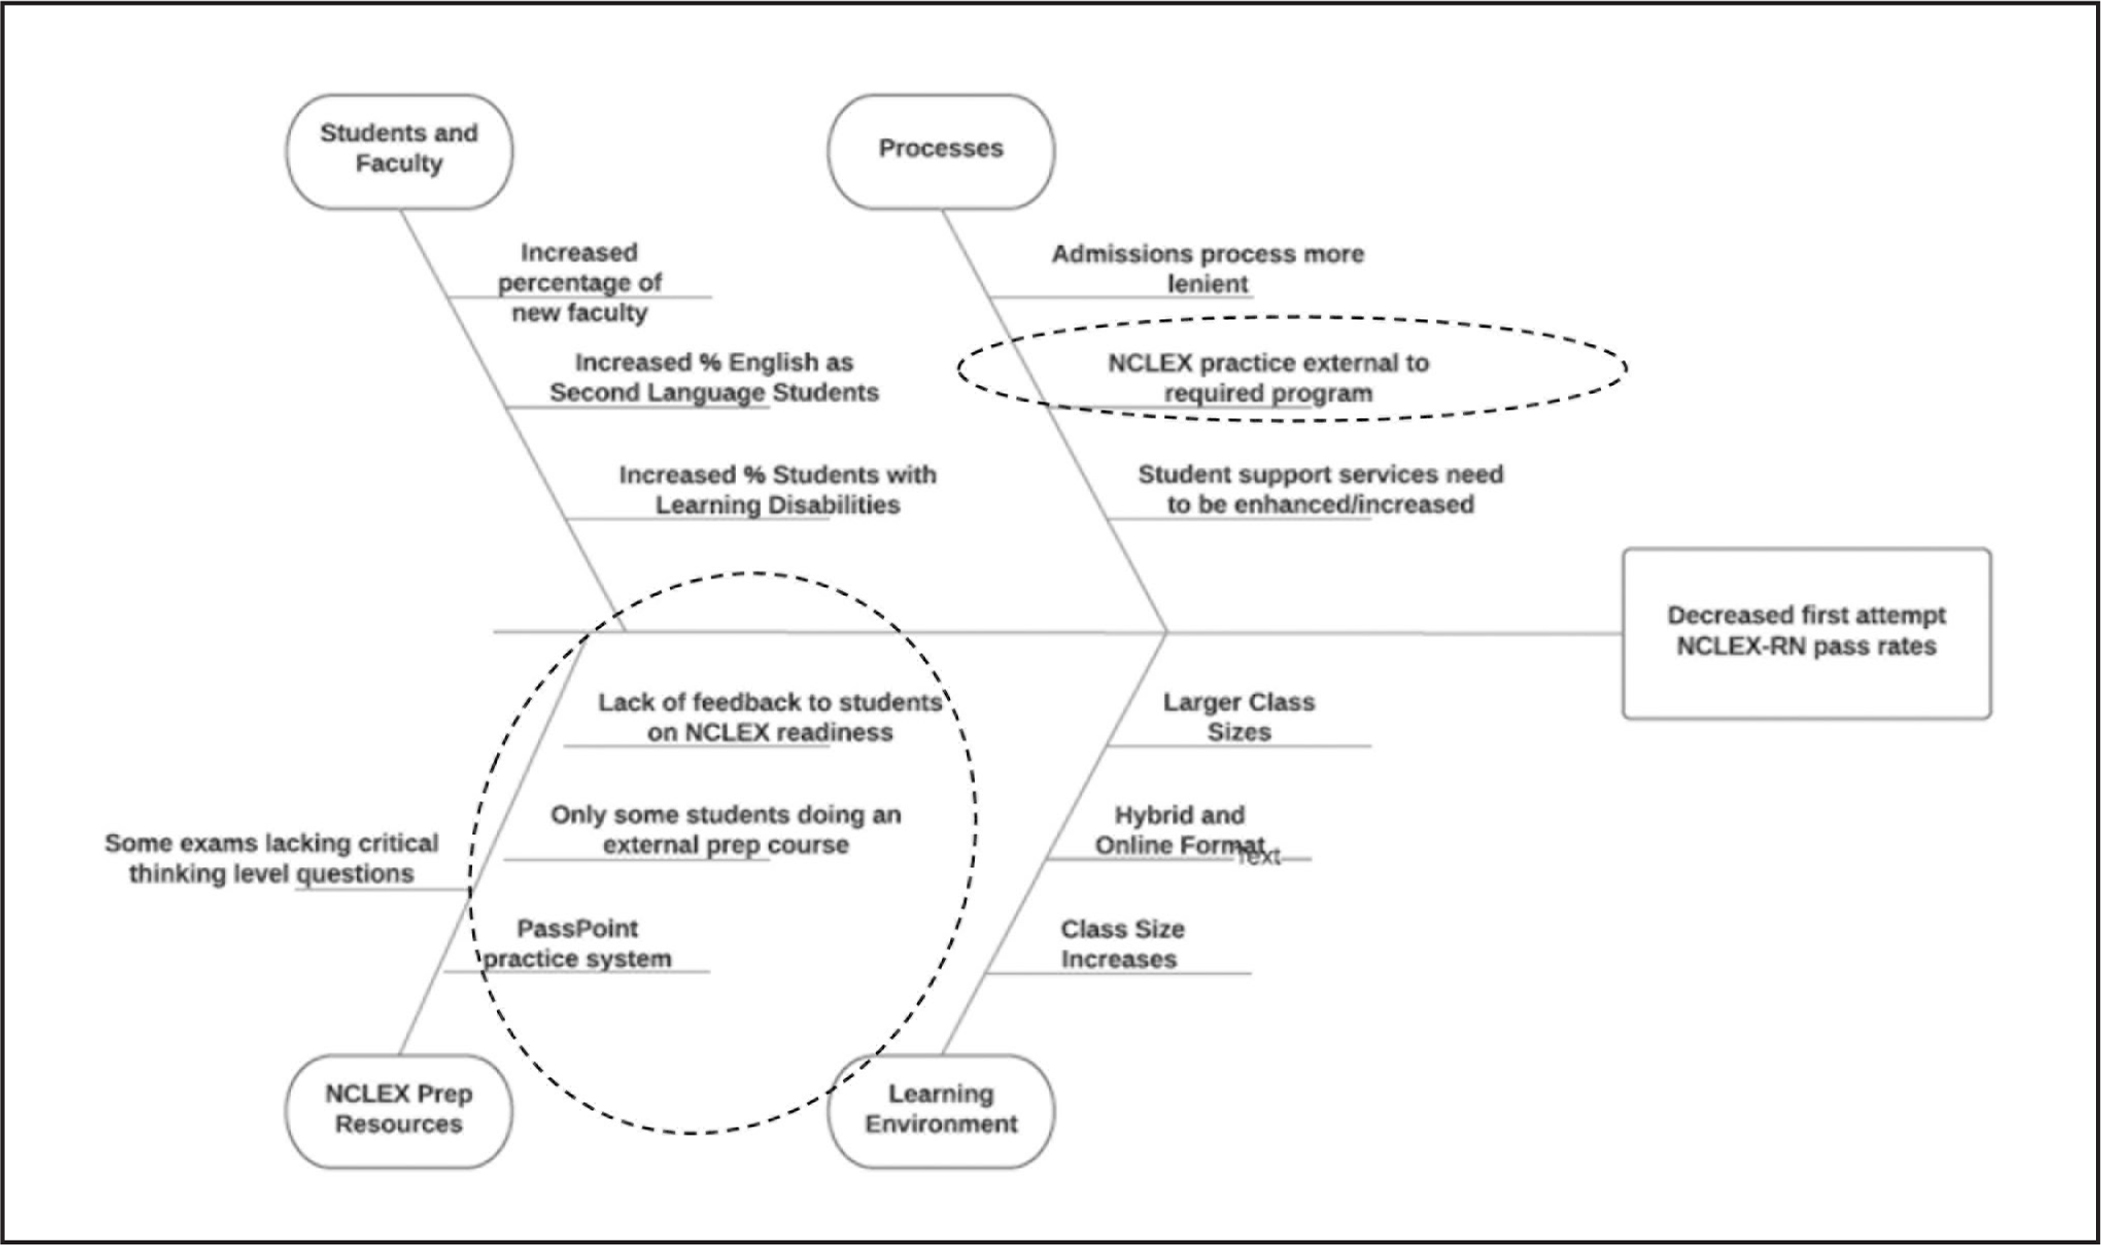 High-level Ishikawa (cause-and-effect, or fishbone) diagram of factors contributing to NCLEX-RN performance. Dashed circles denote foci of improvement interventions selected by the quality improvement action committee.